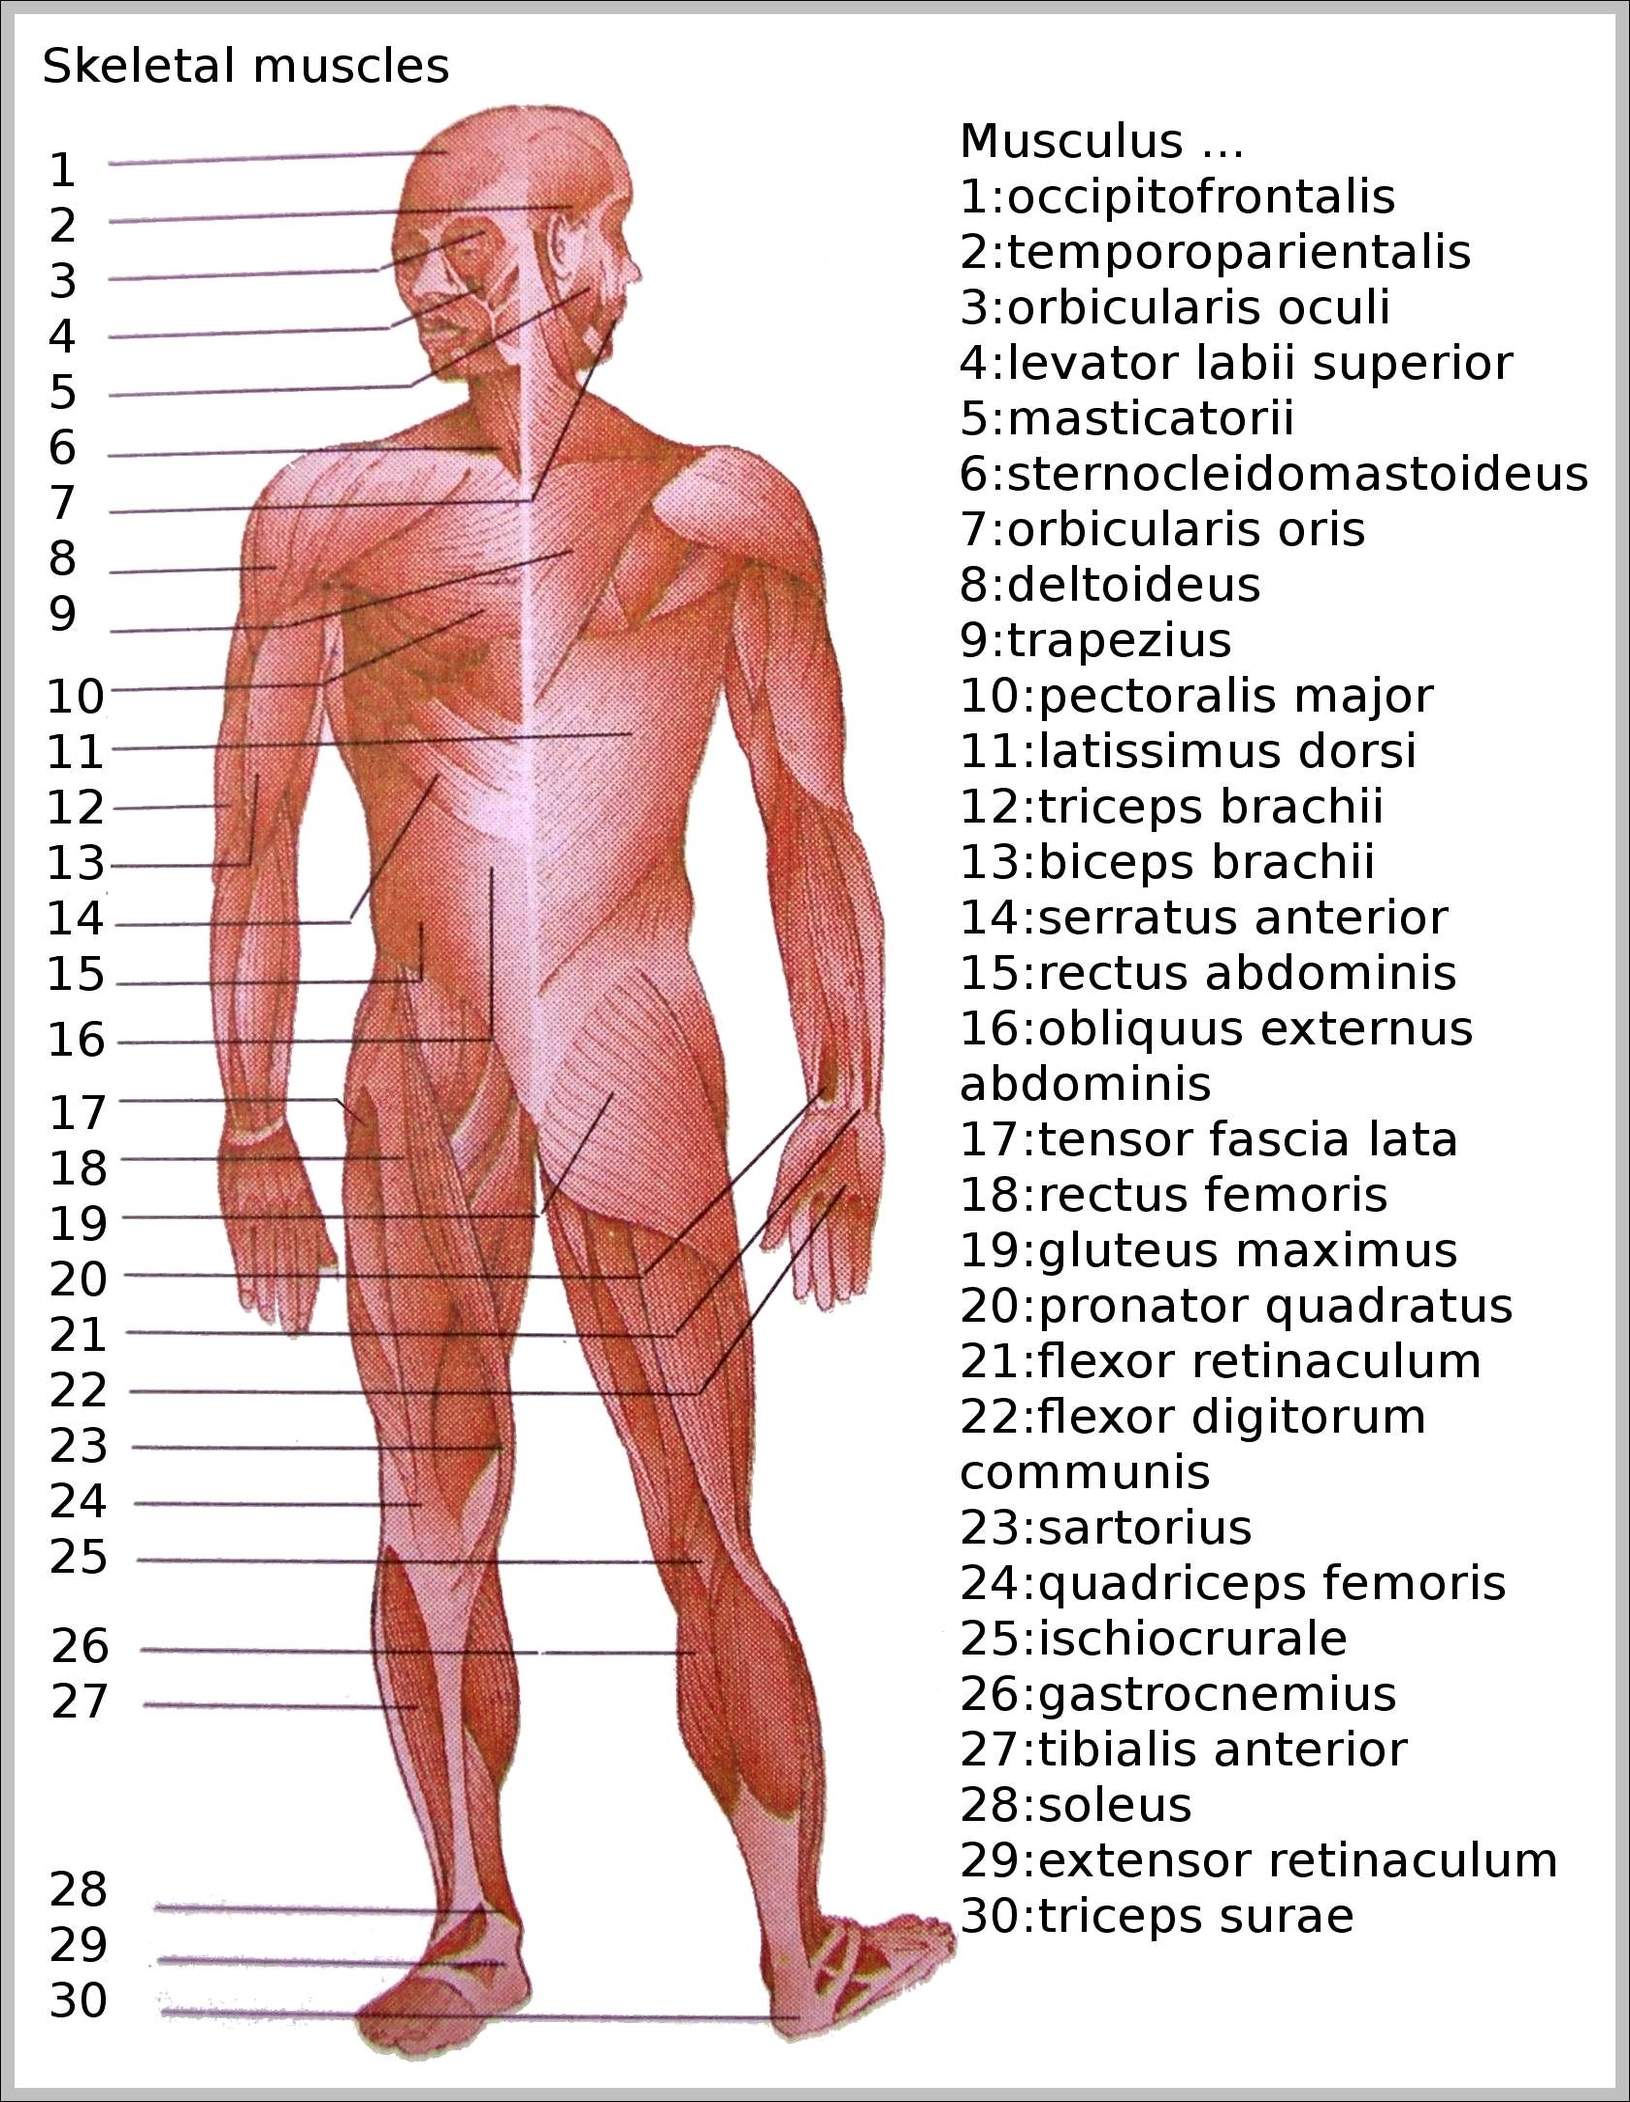 Skeleton anatomy system human body anatomy diagram and chart images skeletal muscle diagram ccuart Choice Image